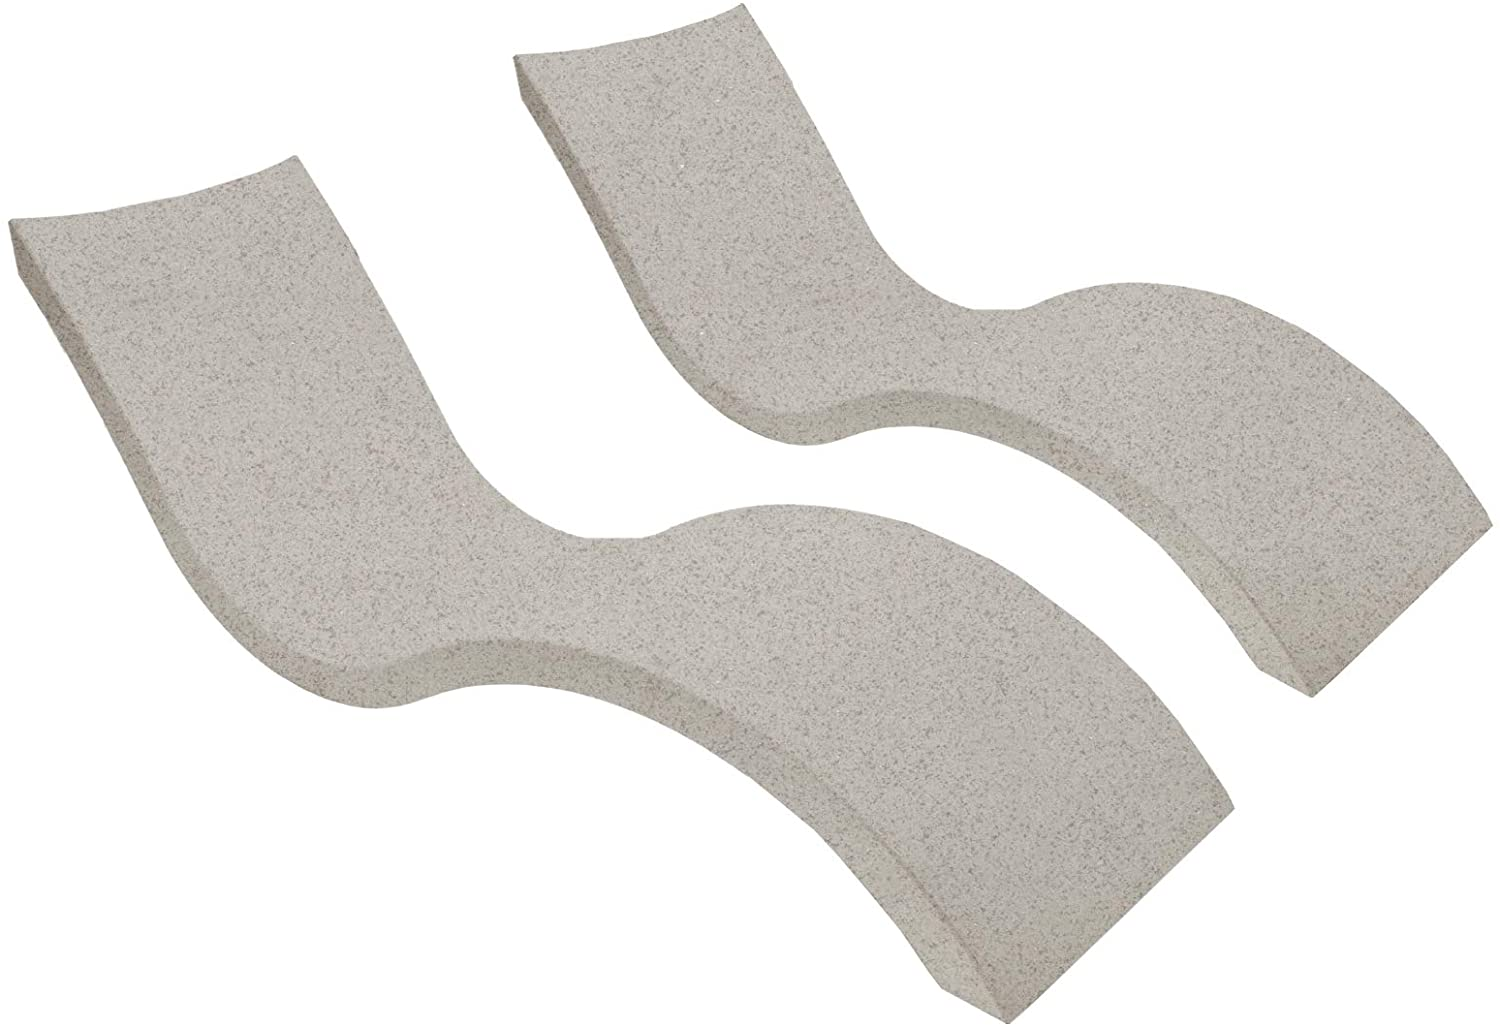 Ledge Lounger in-Pool Chaise Lounge for 0-9 in. of Water Set of 2, Sandstone